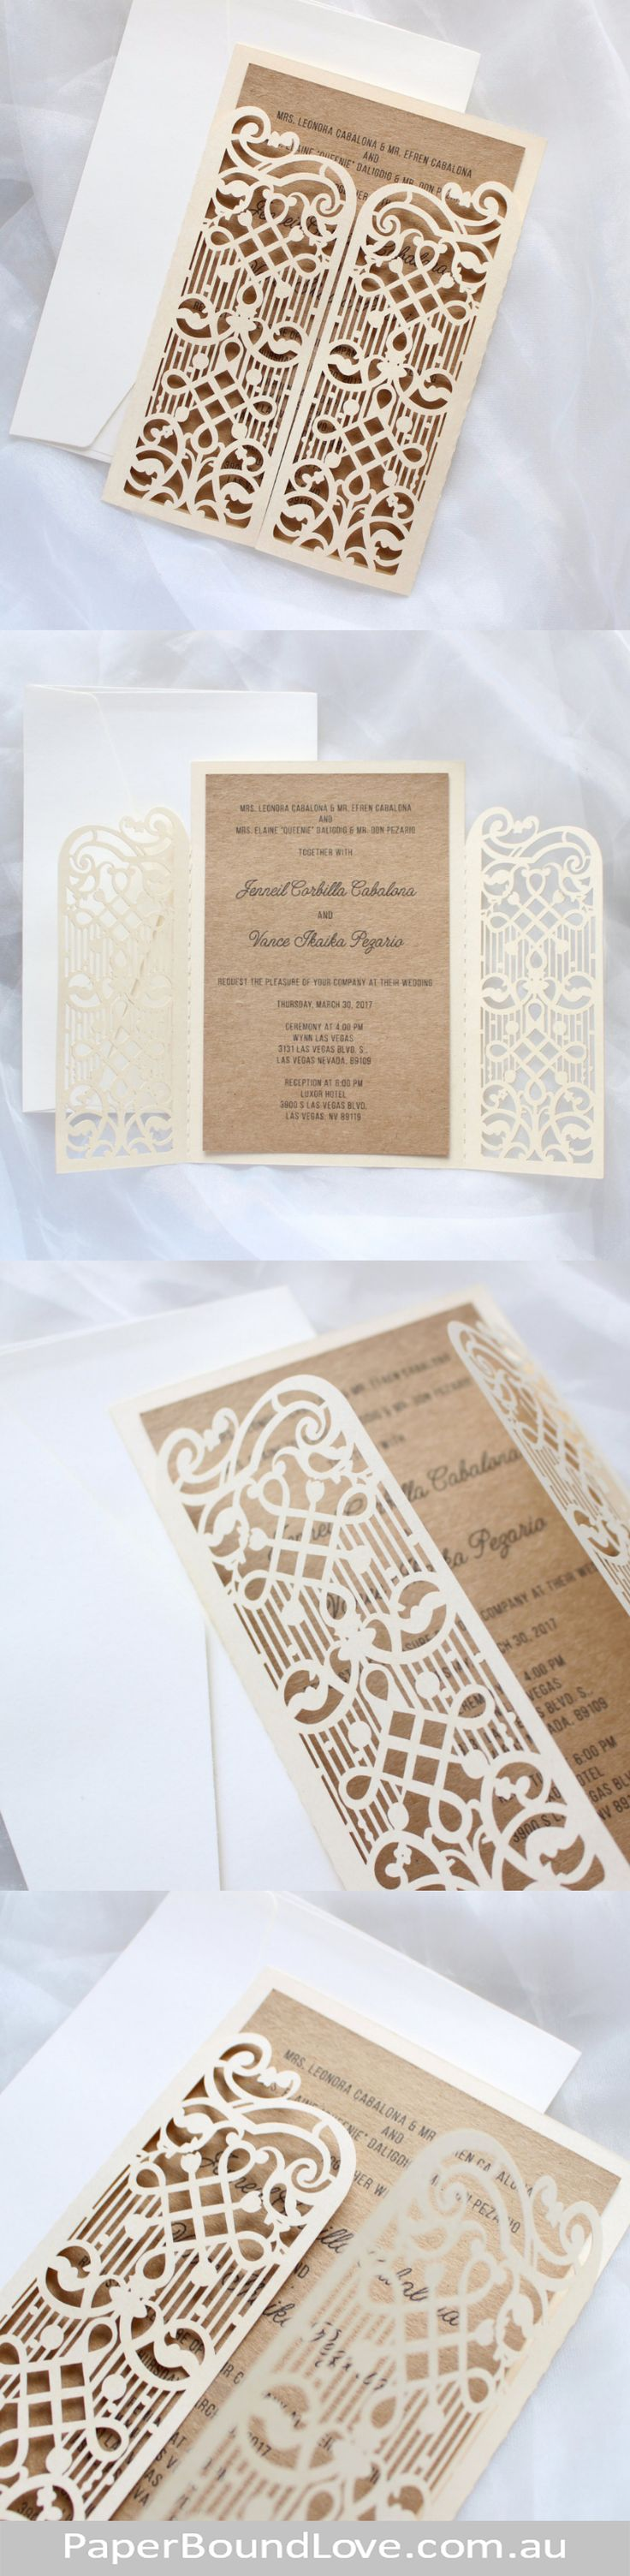 Gate Fold | Ivory wedding invitations by Paper Bound Love